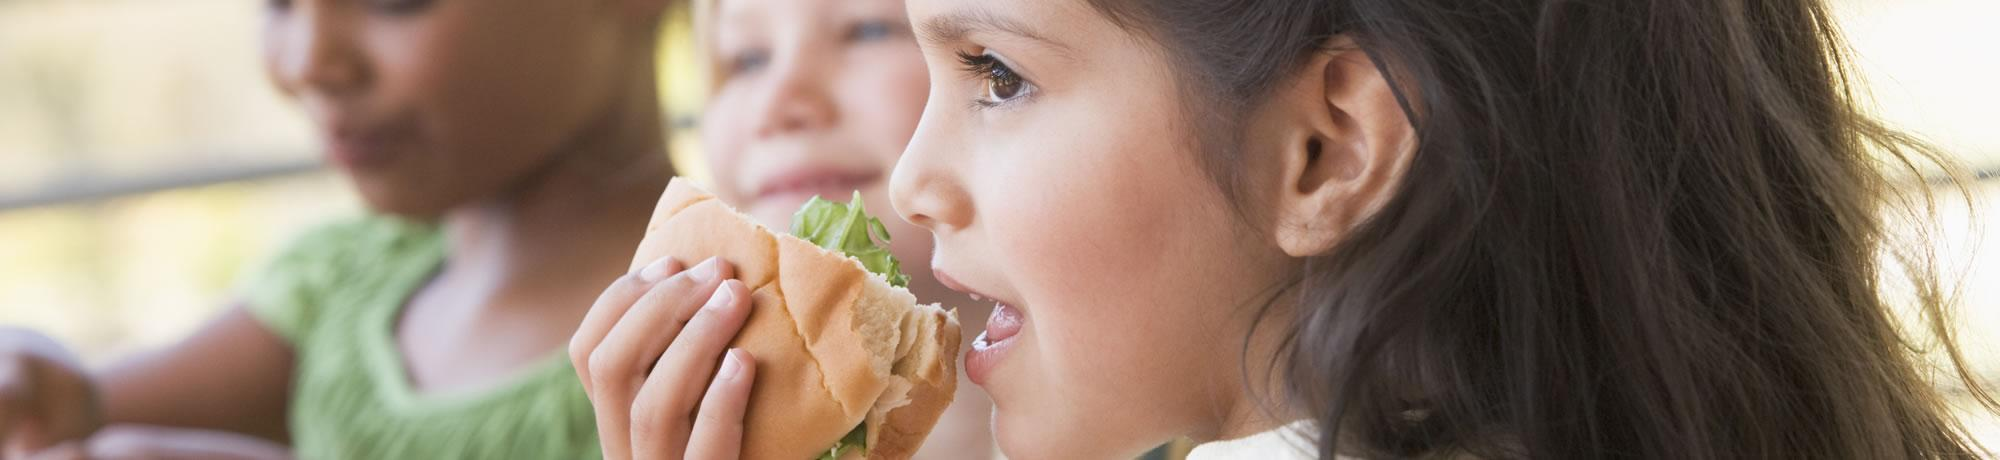 A girl eating a sandwhich.